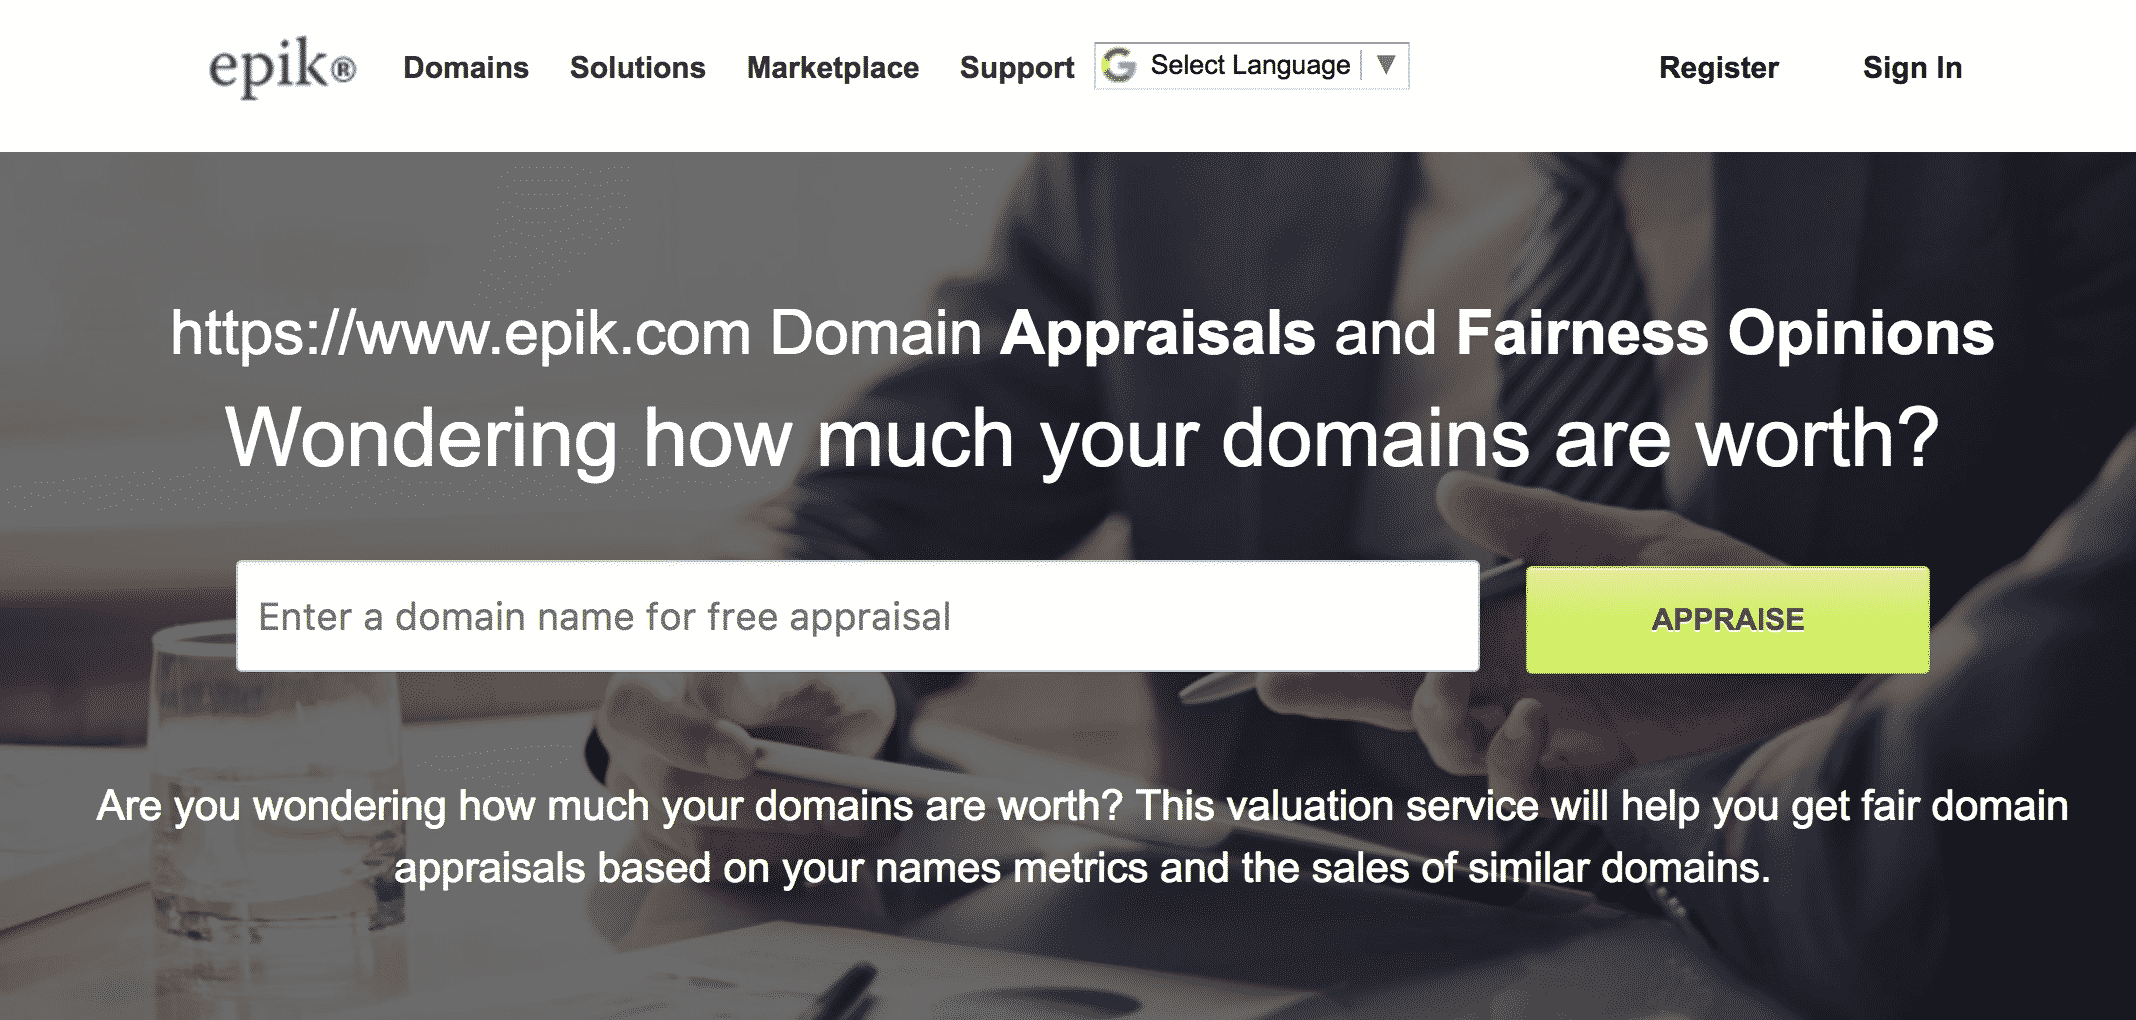 Epik Domain Valuation Service